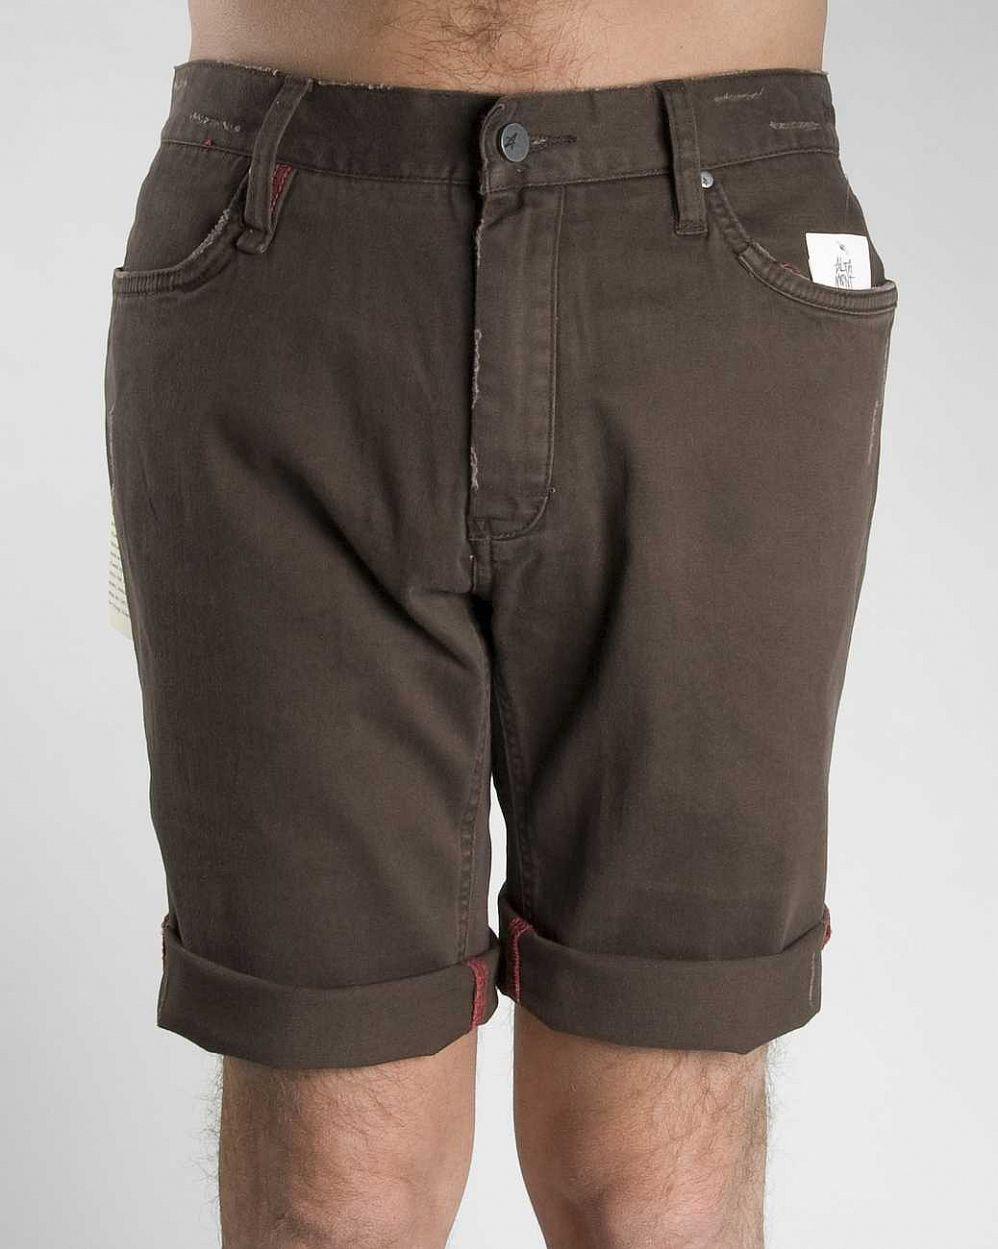 купить Шорты Altamont A.reynolds Signature MNS Shorts Brown в Москве